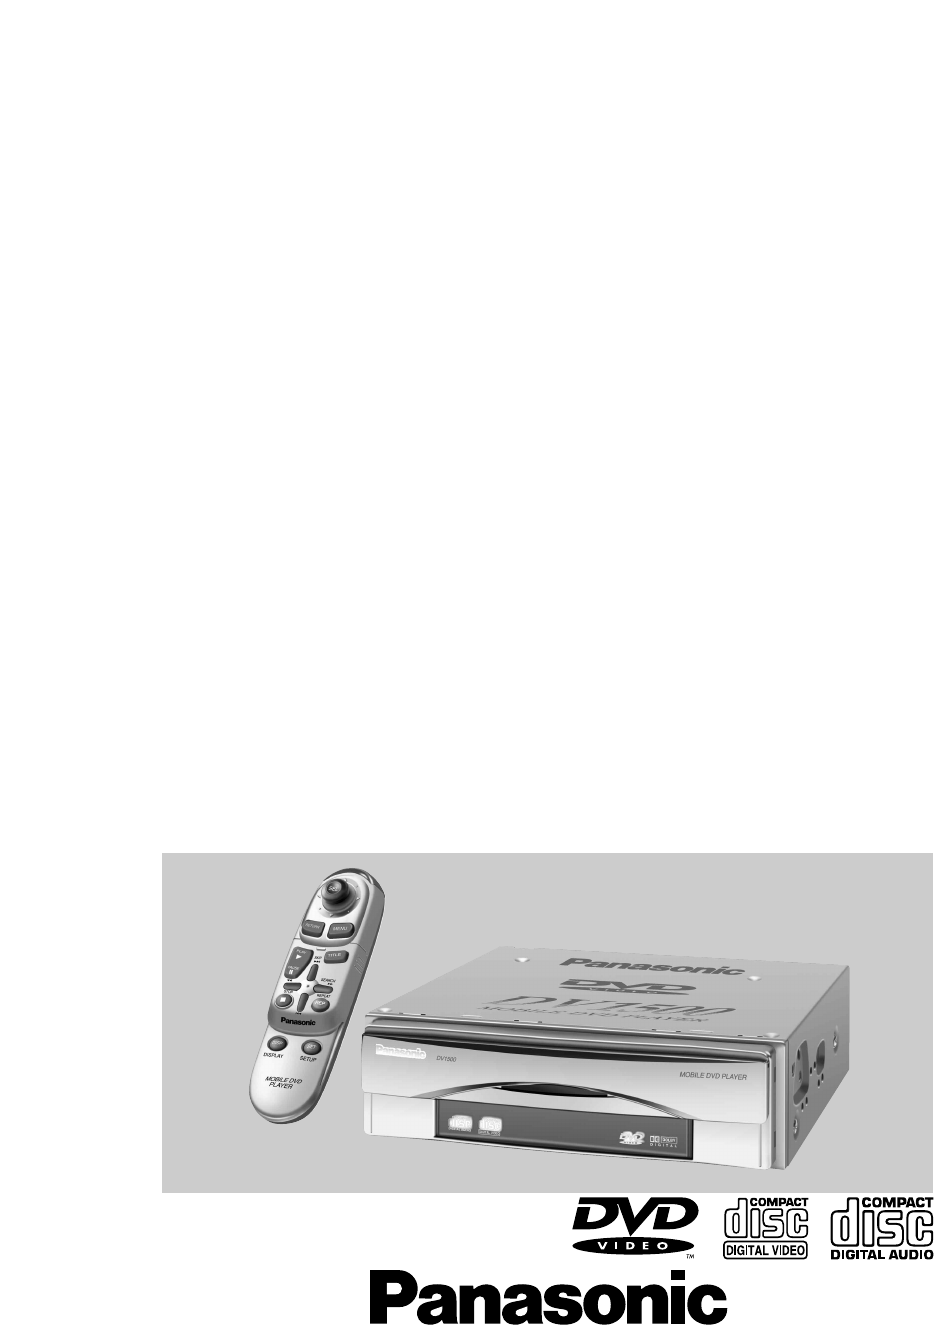 how to connect panasonic dvd player to tv